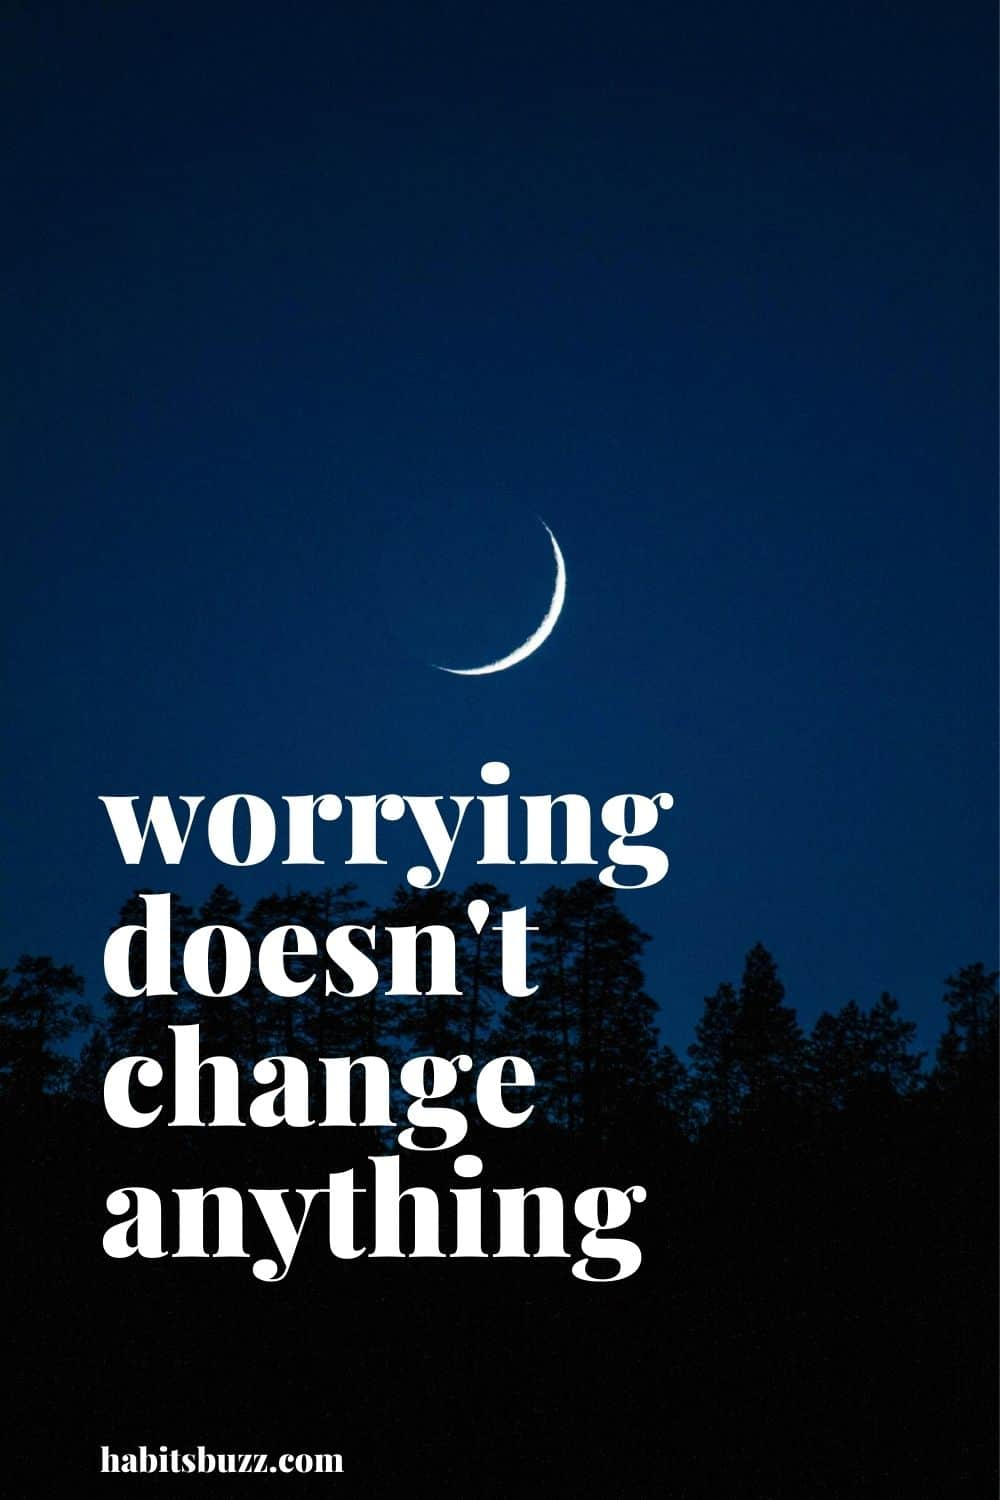 worrying doesn't change anything - mantras to get through bad days in life